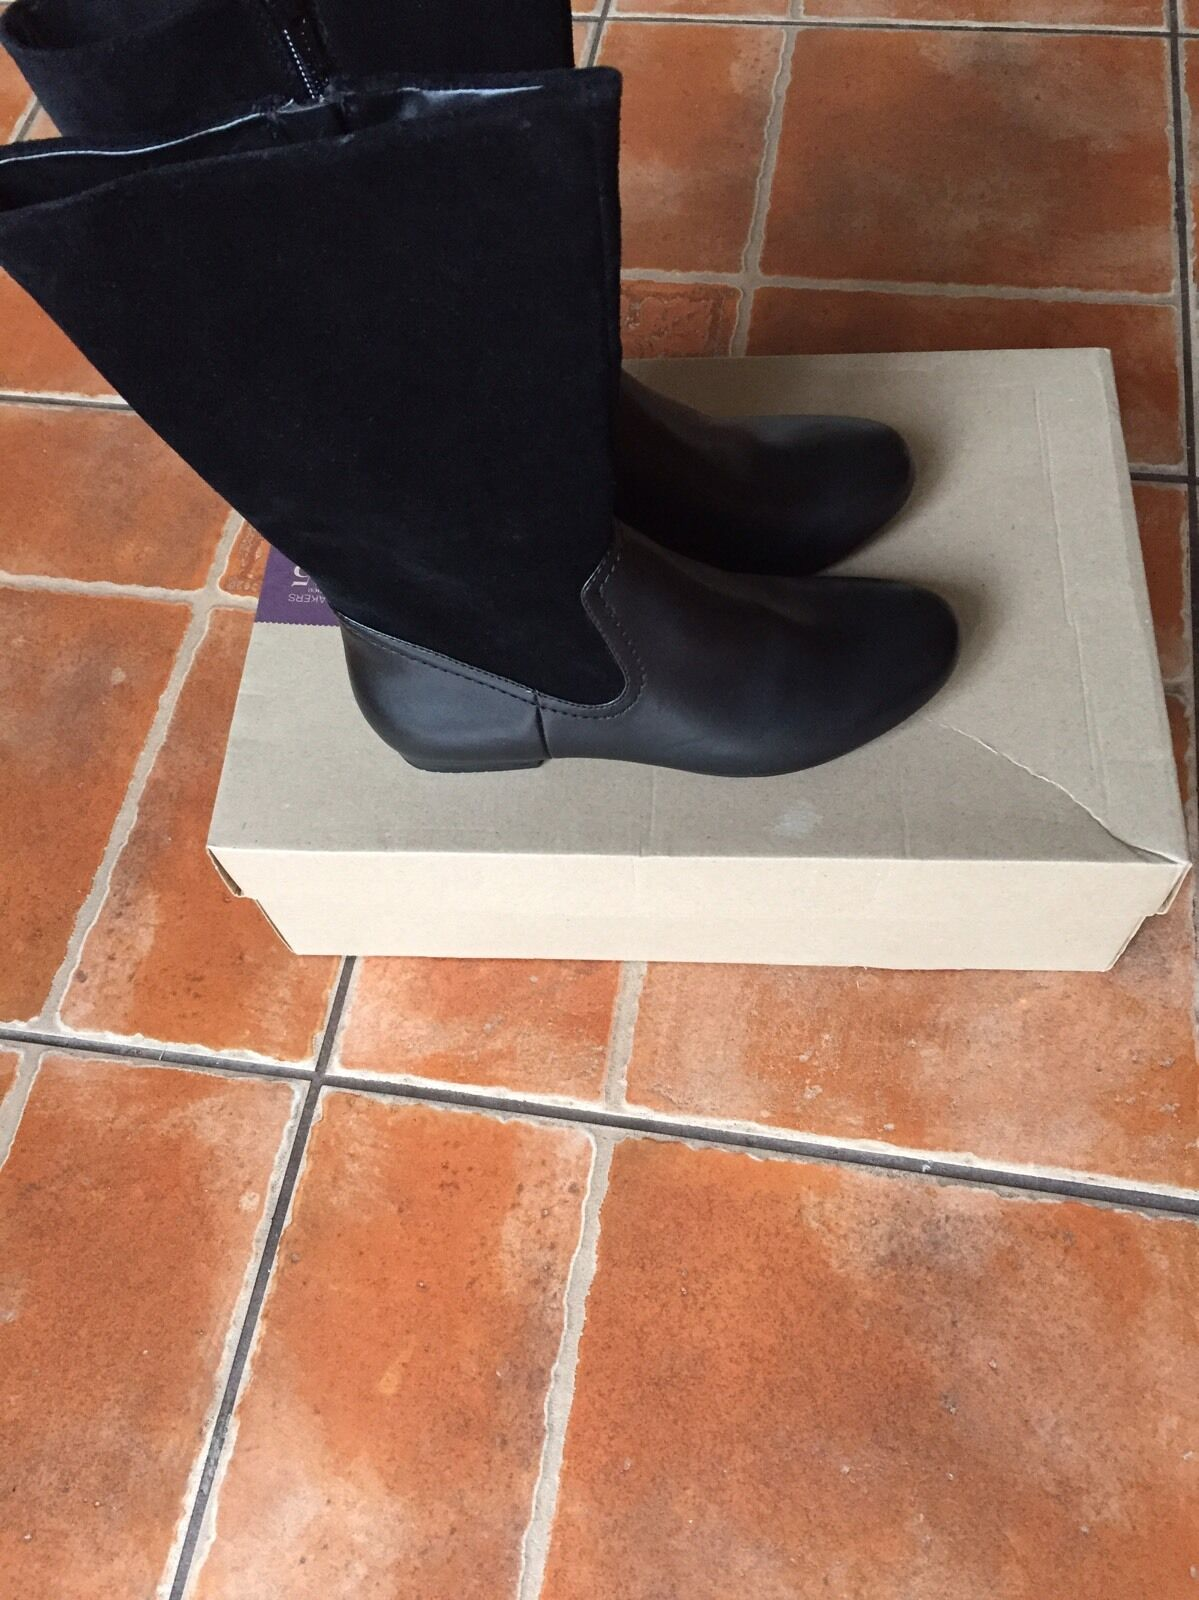 Clark's Ladies Leather Long Black Boots UK 5.5 Black Combi Leathers & suede BNWB